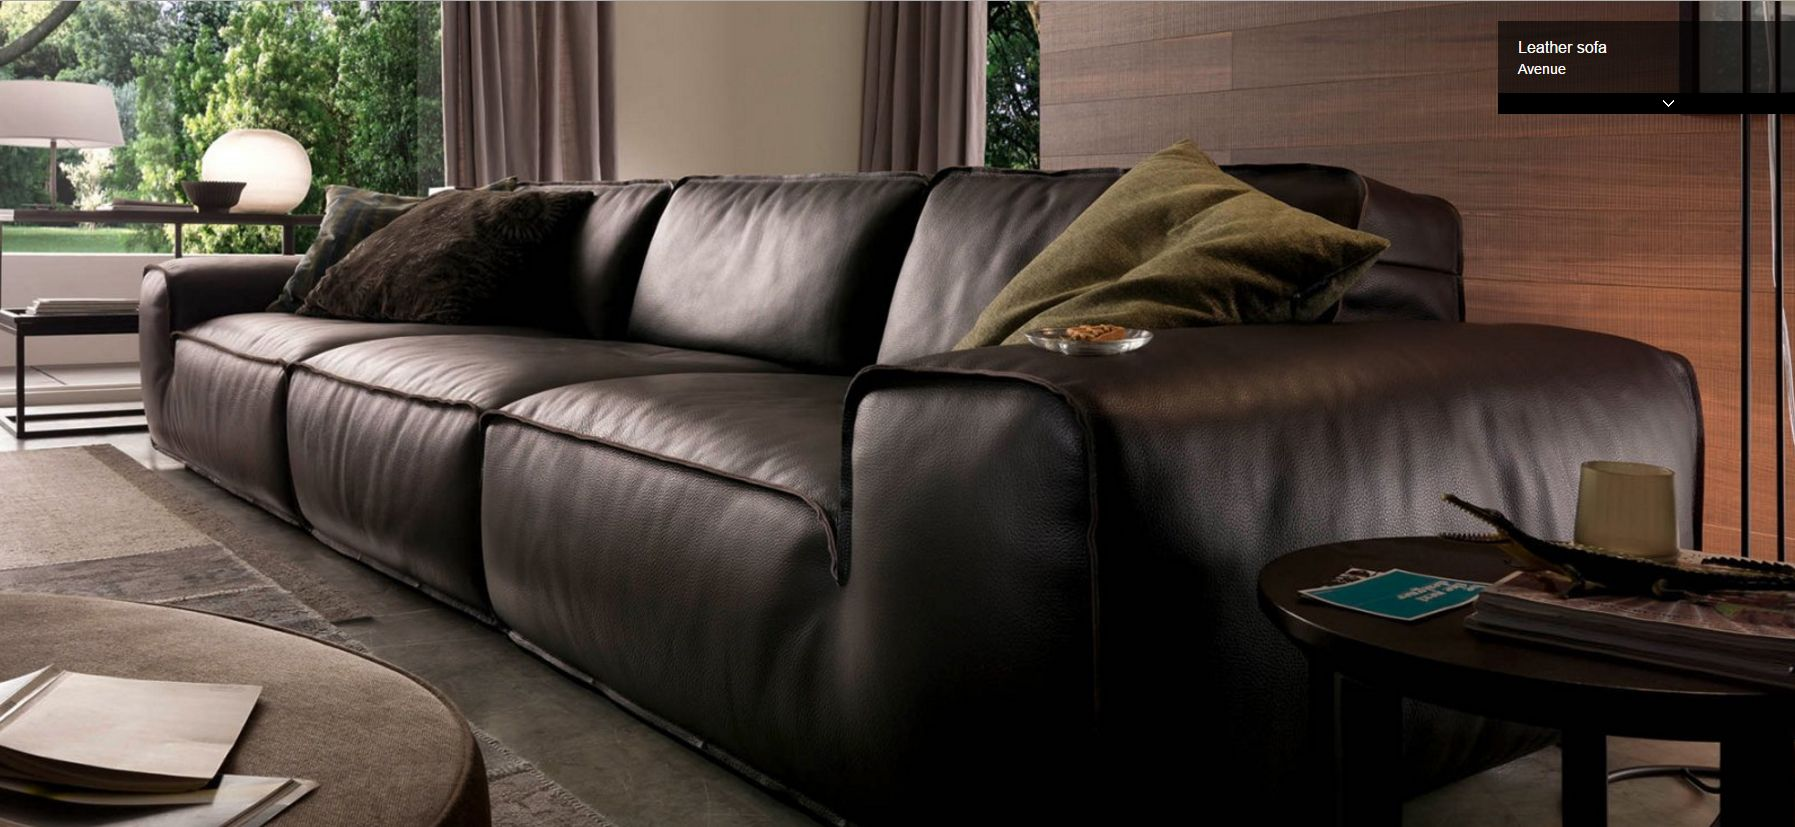 Chateau D Ax Divani In Pelle.Avenue Sectional By Chateau D Ax Italy Shown In Leather